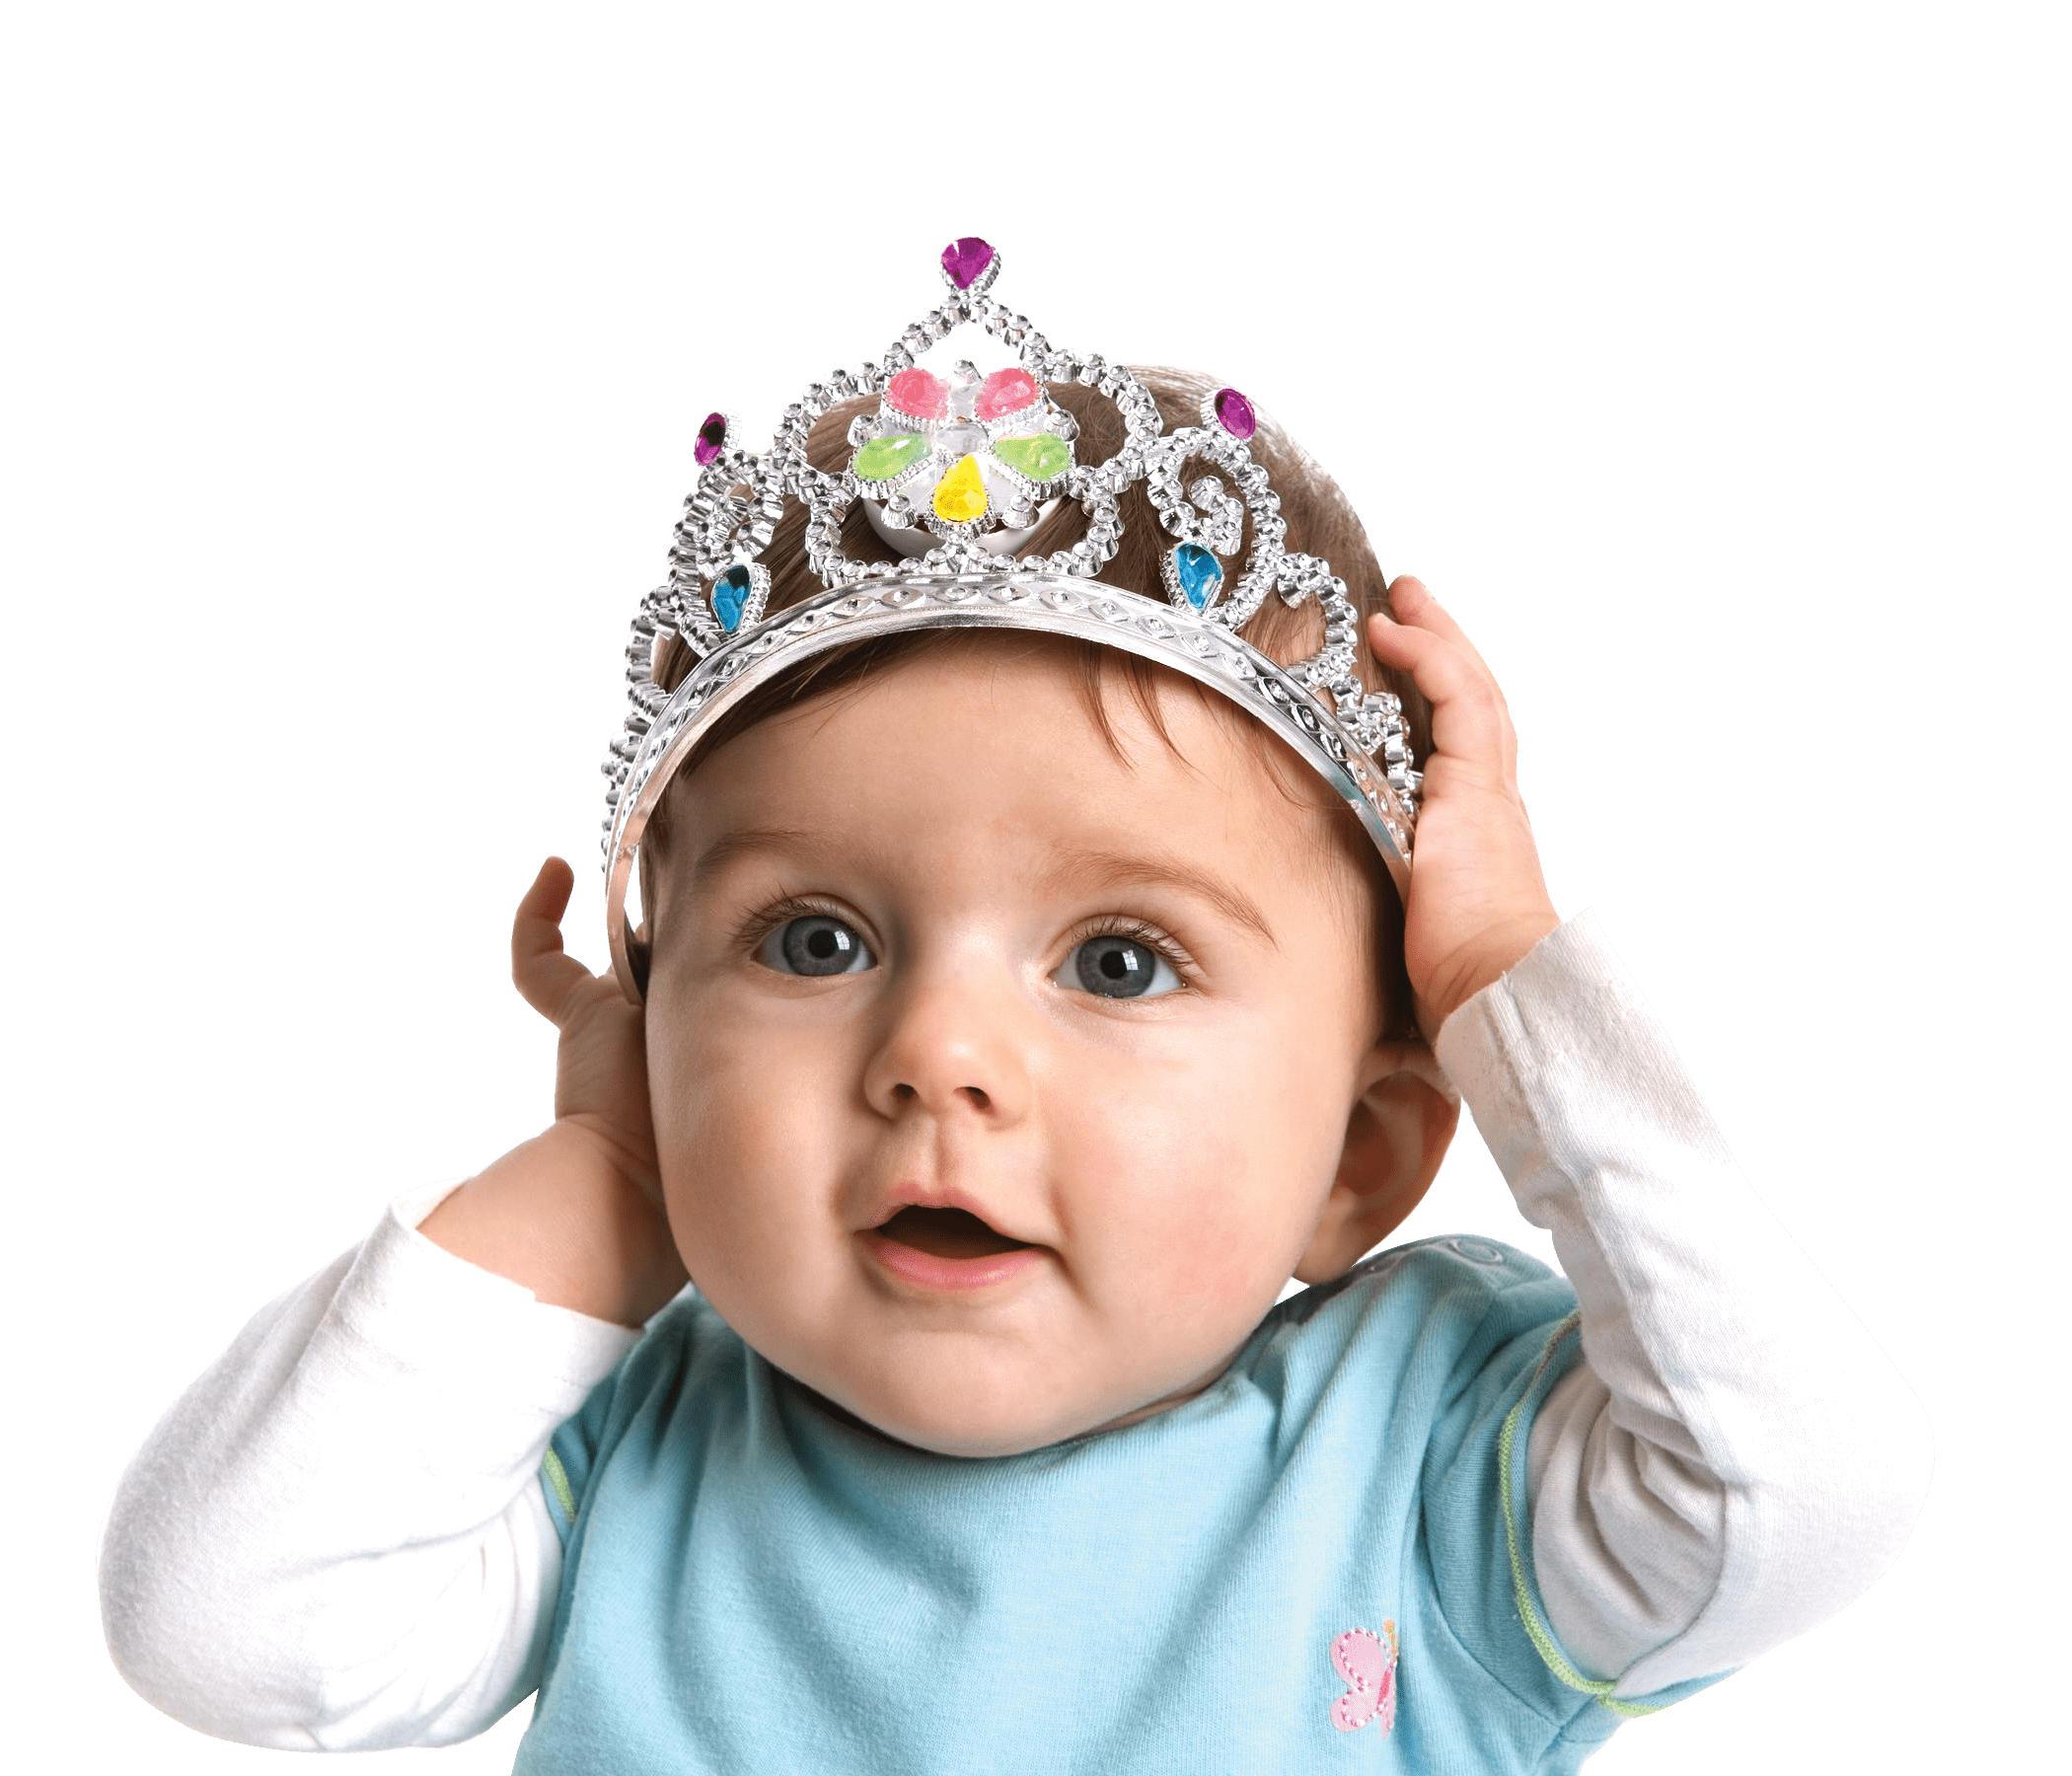 Cute Baby Png - Cute Baby With Crown